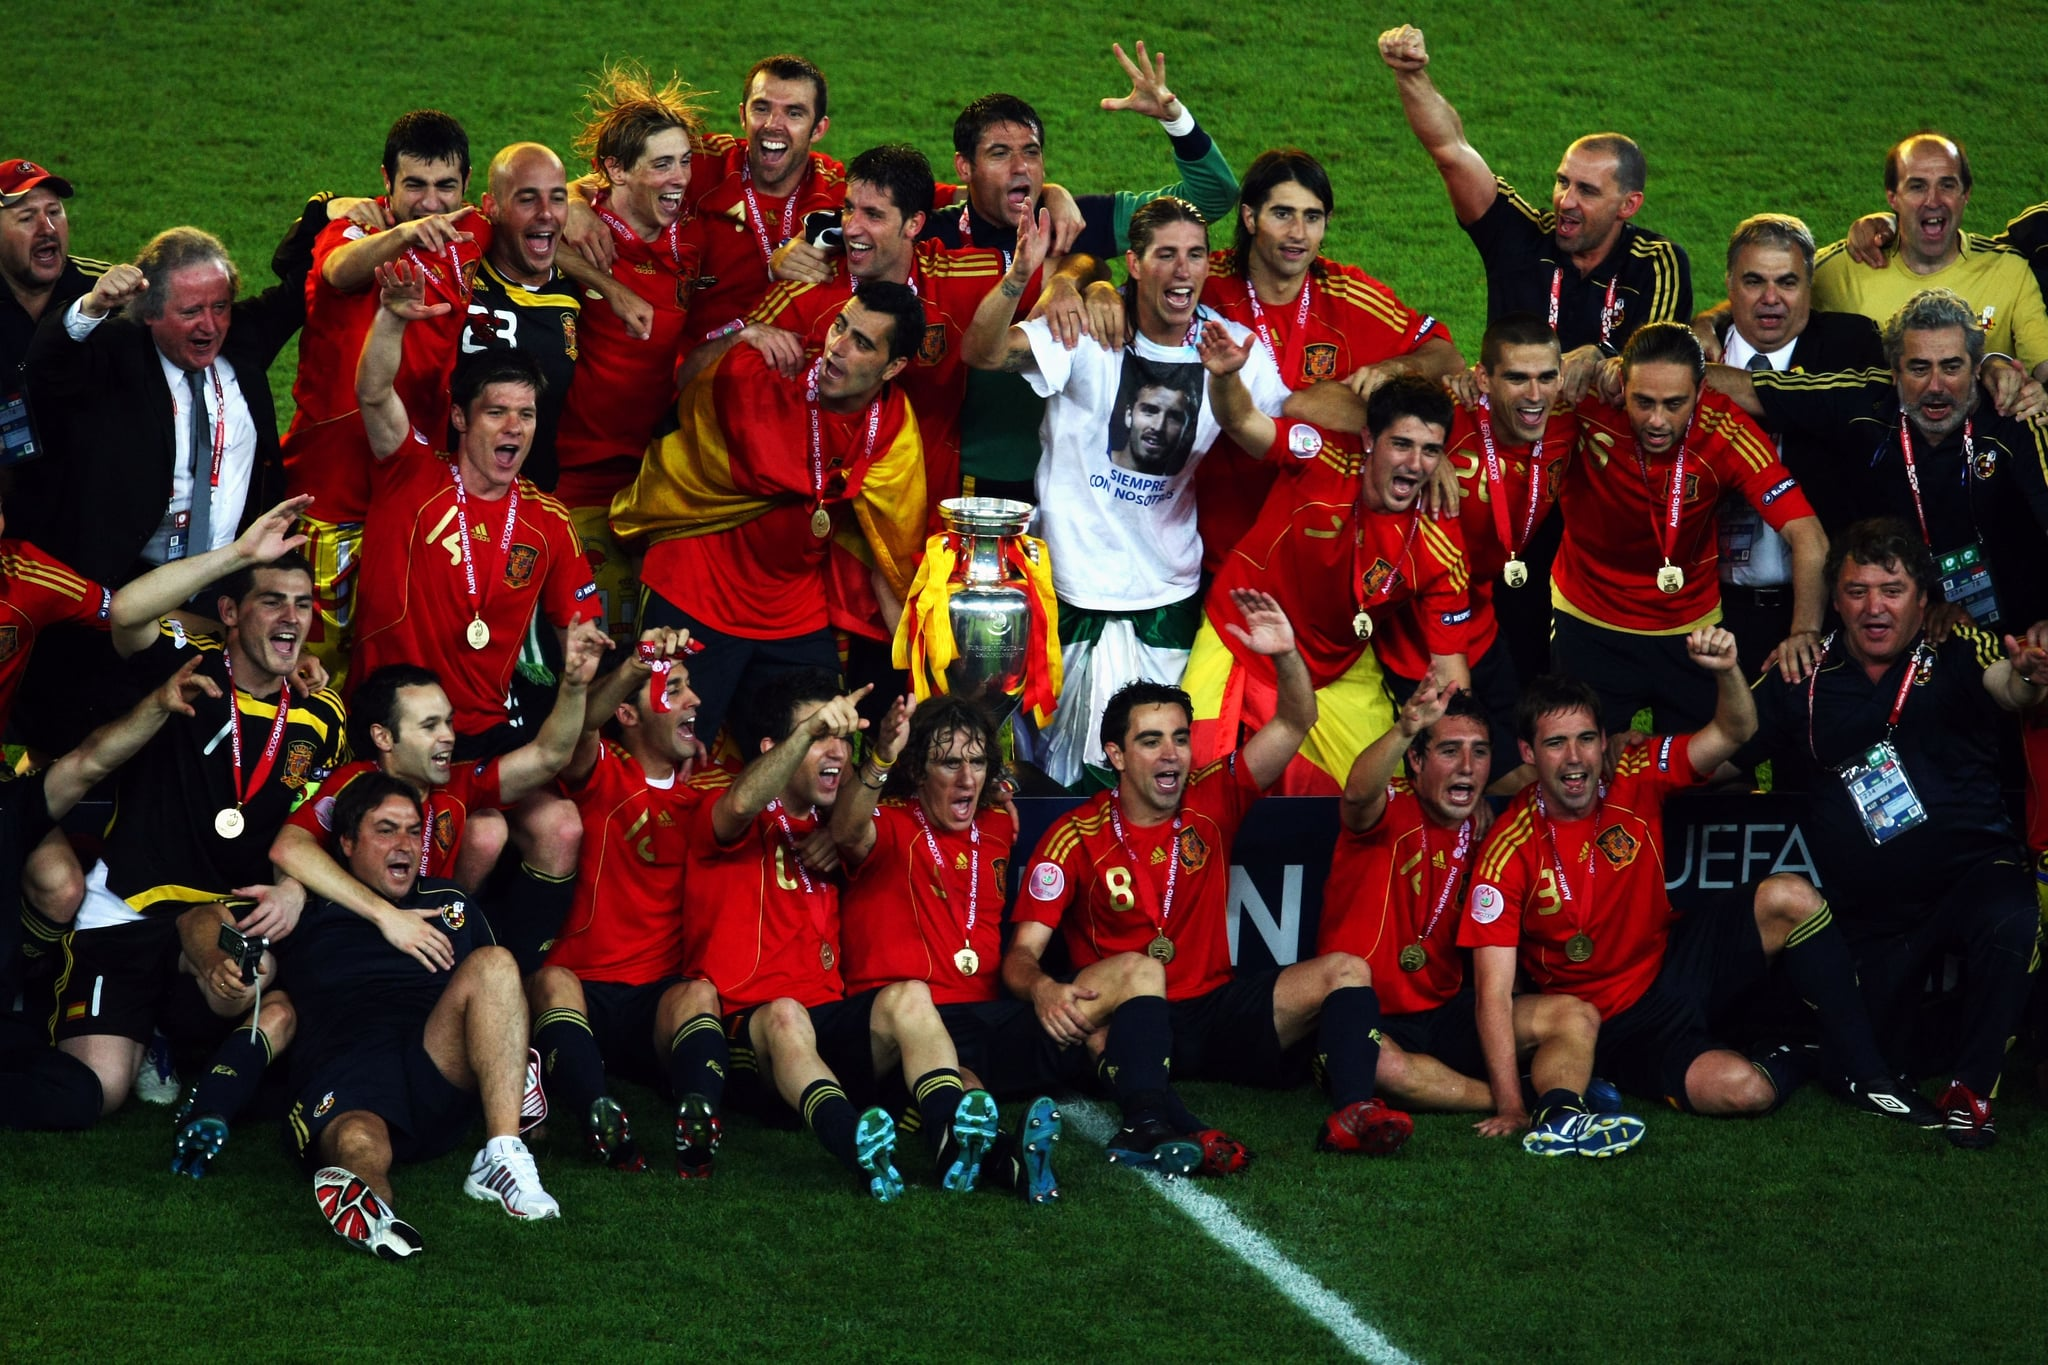 Spanish players pose for a team photograph.